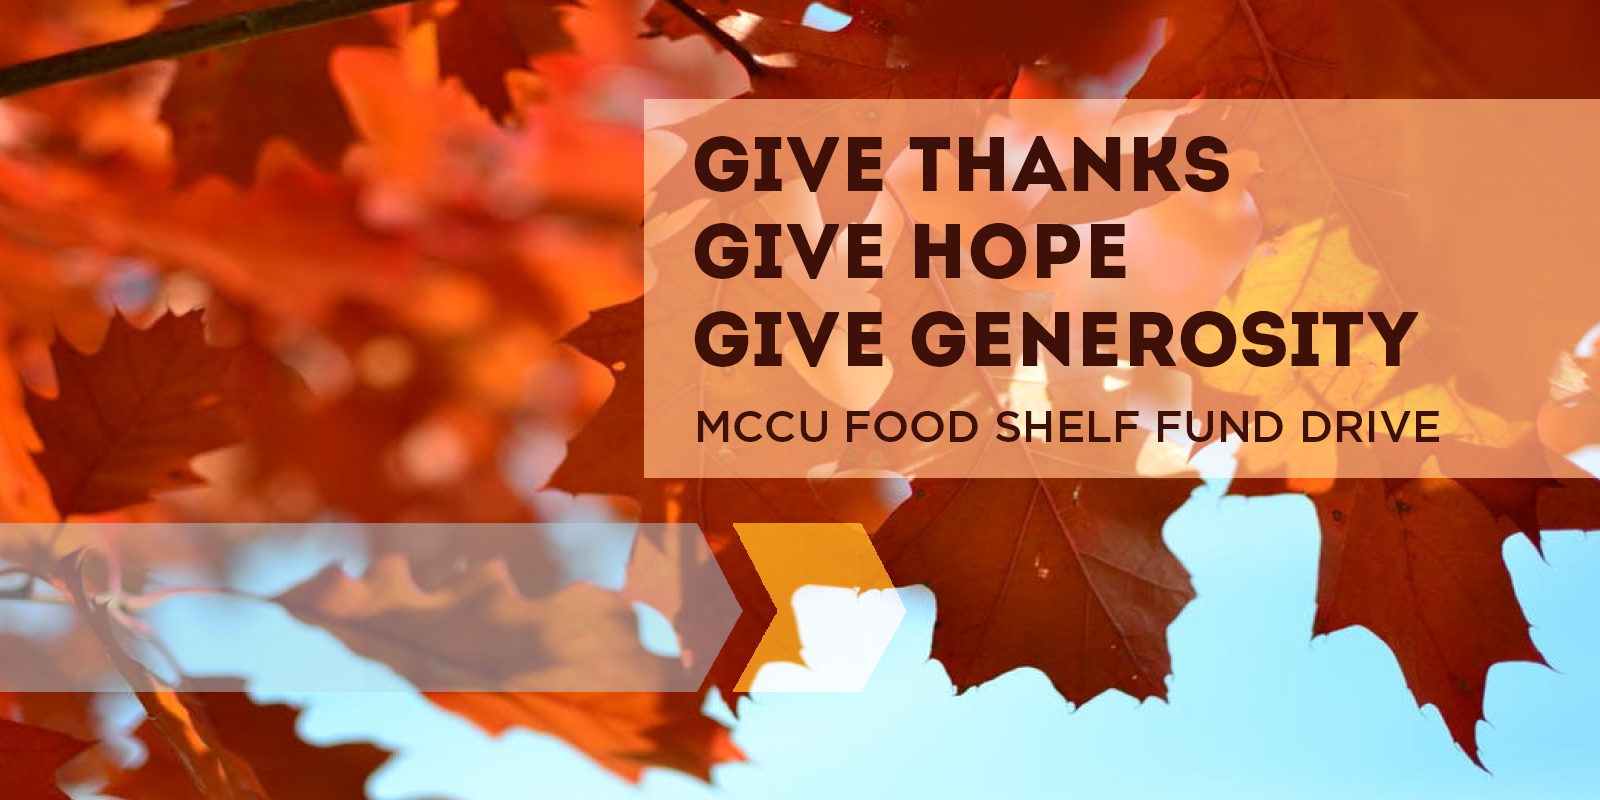 MCCU Food Shelf Fund Drive